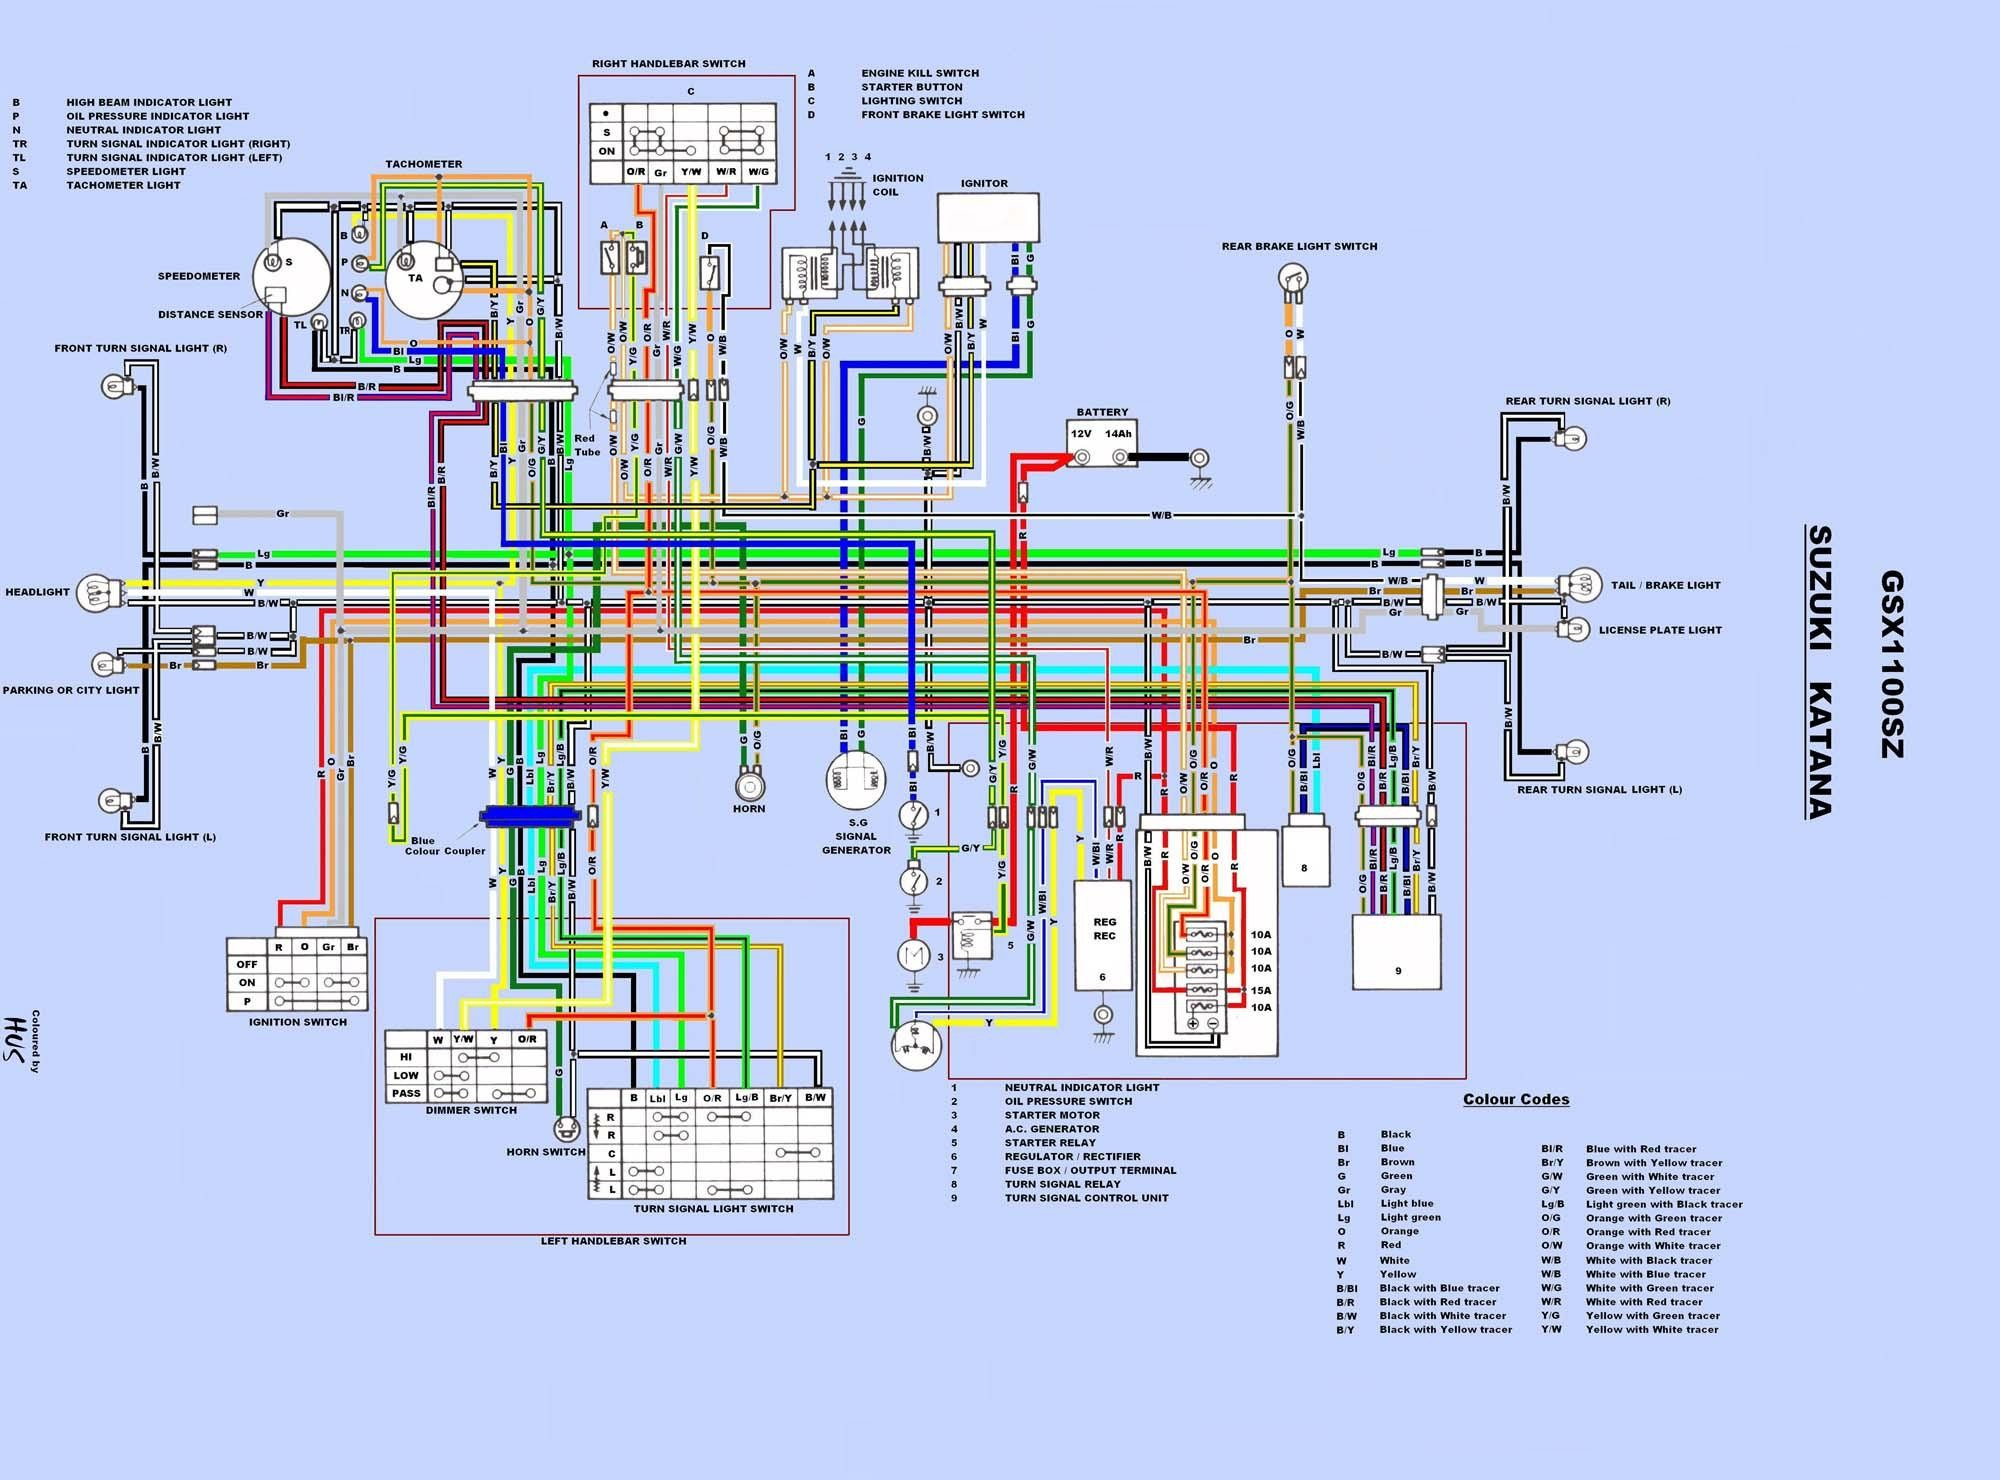 hight resolution of 2007 gsxr wiring diagram wiring diagram name 2007 suzuki gsxr 600 wiring diagram 2007 gsxr wiring diagram